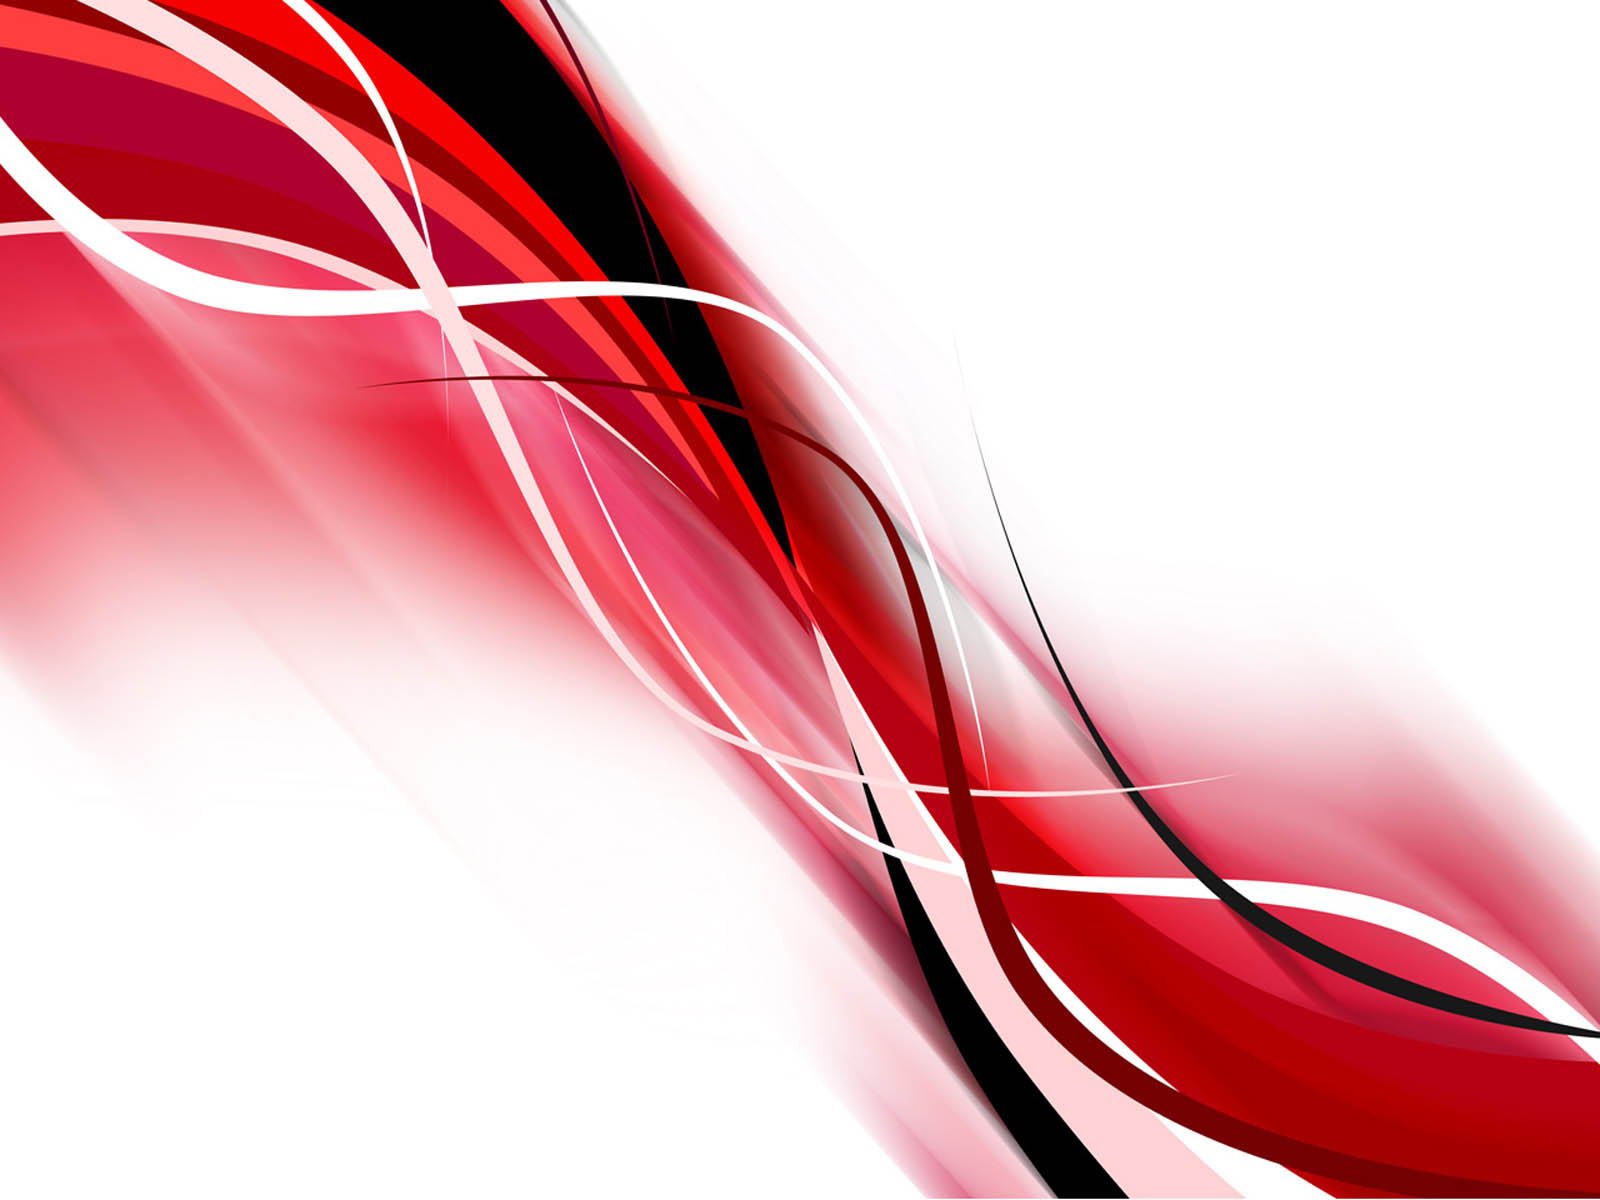 wallpapers Abstract Red Wallpapers 1600x1200